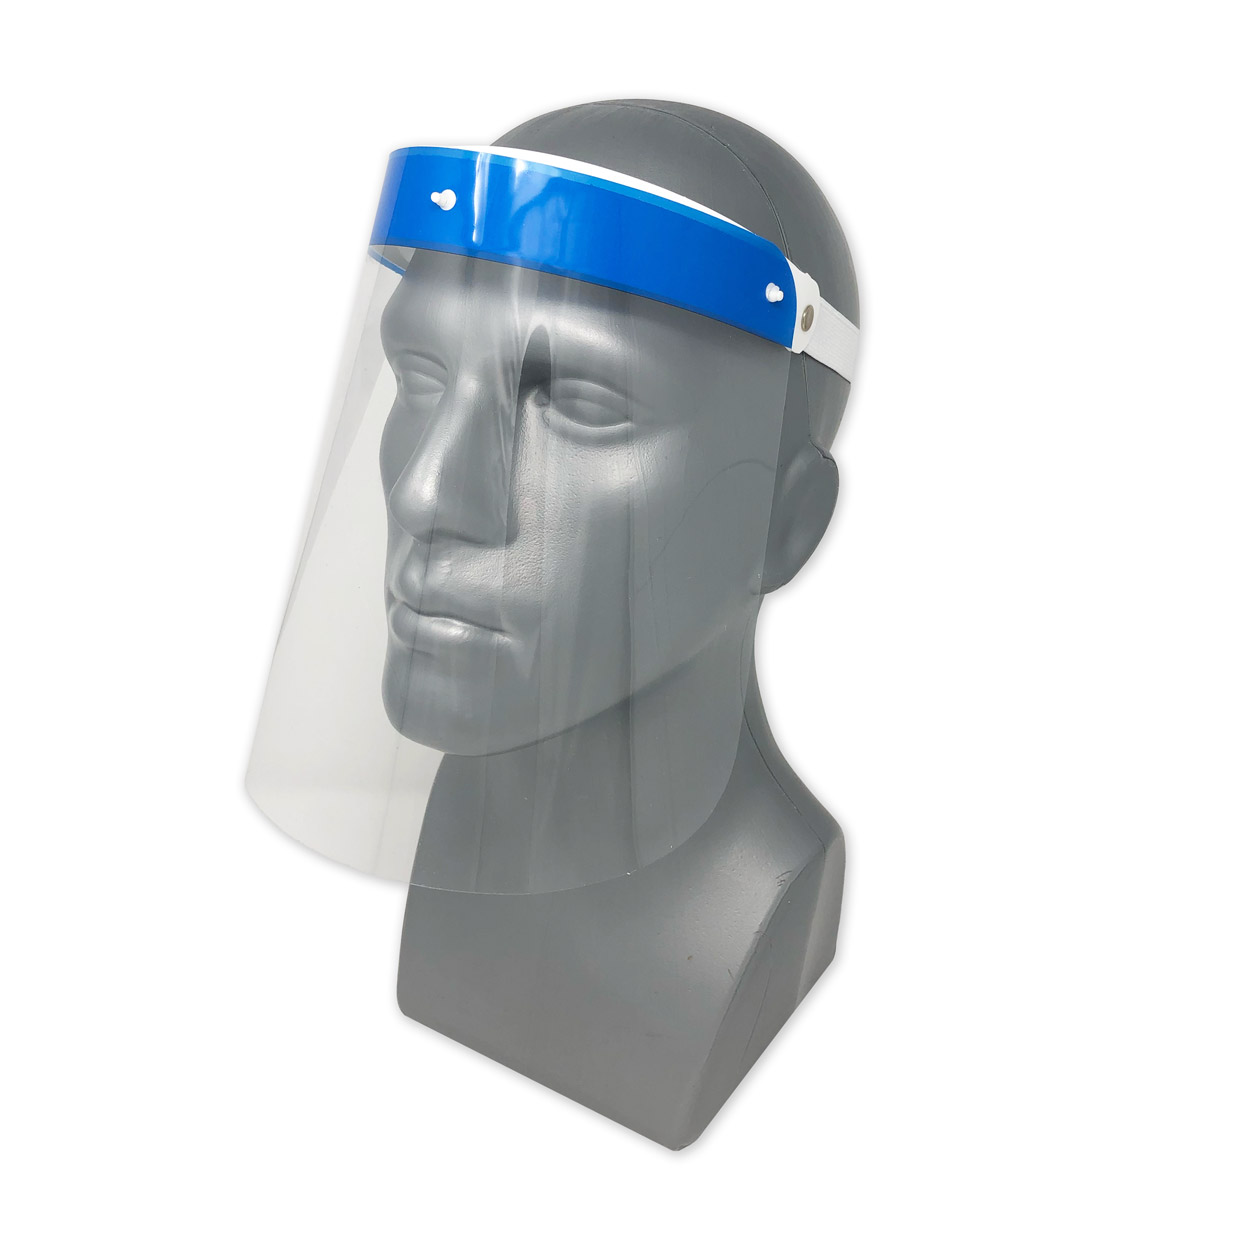 Gesichtsschild (Face Shield)